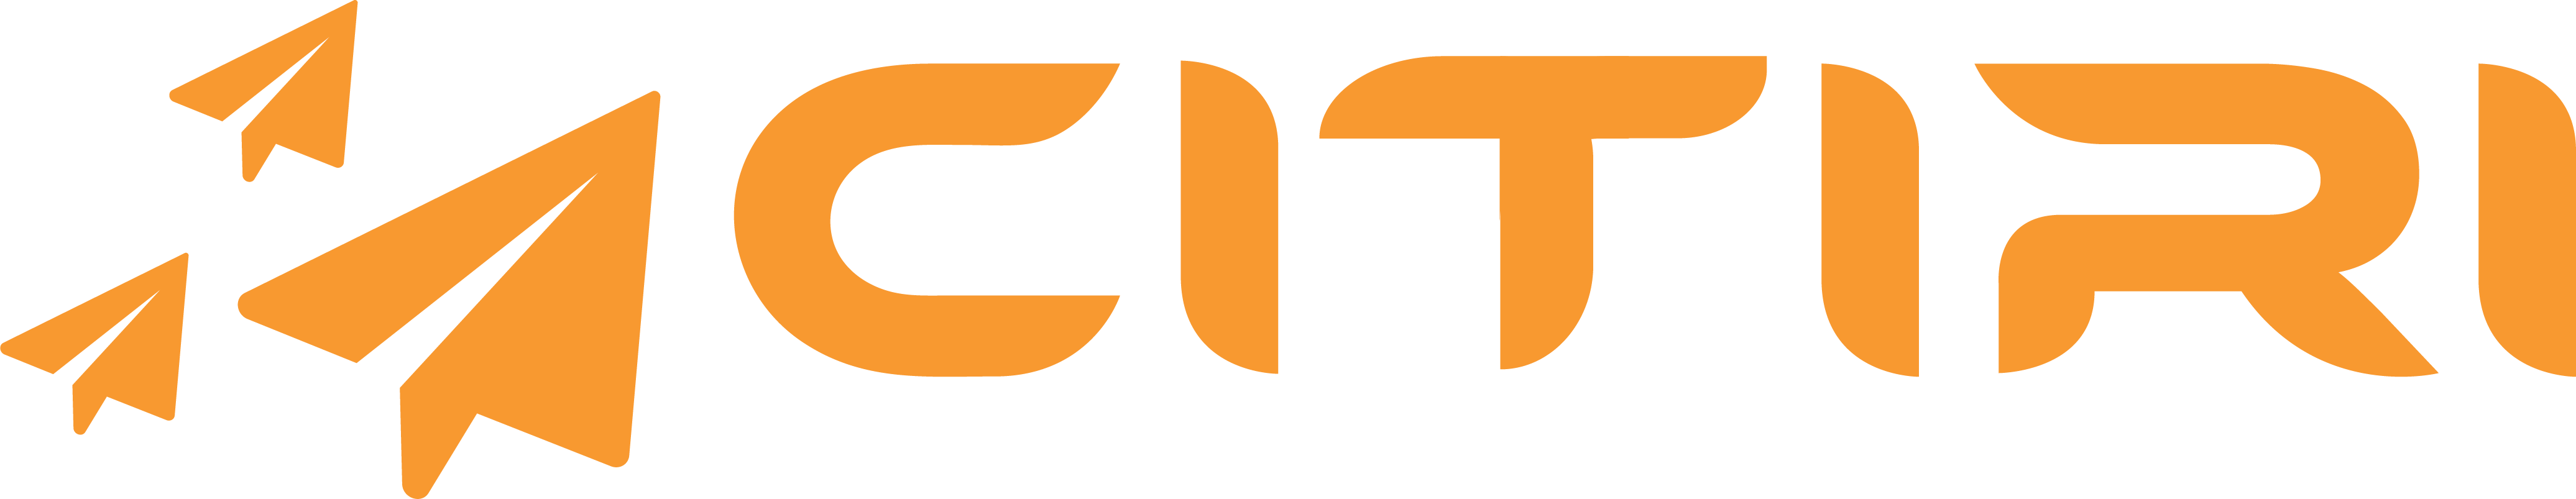 ORAT Software Platform by Citiri